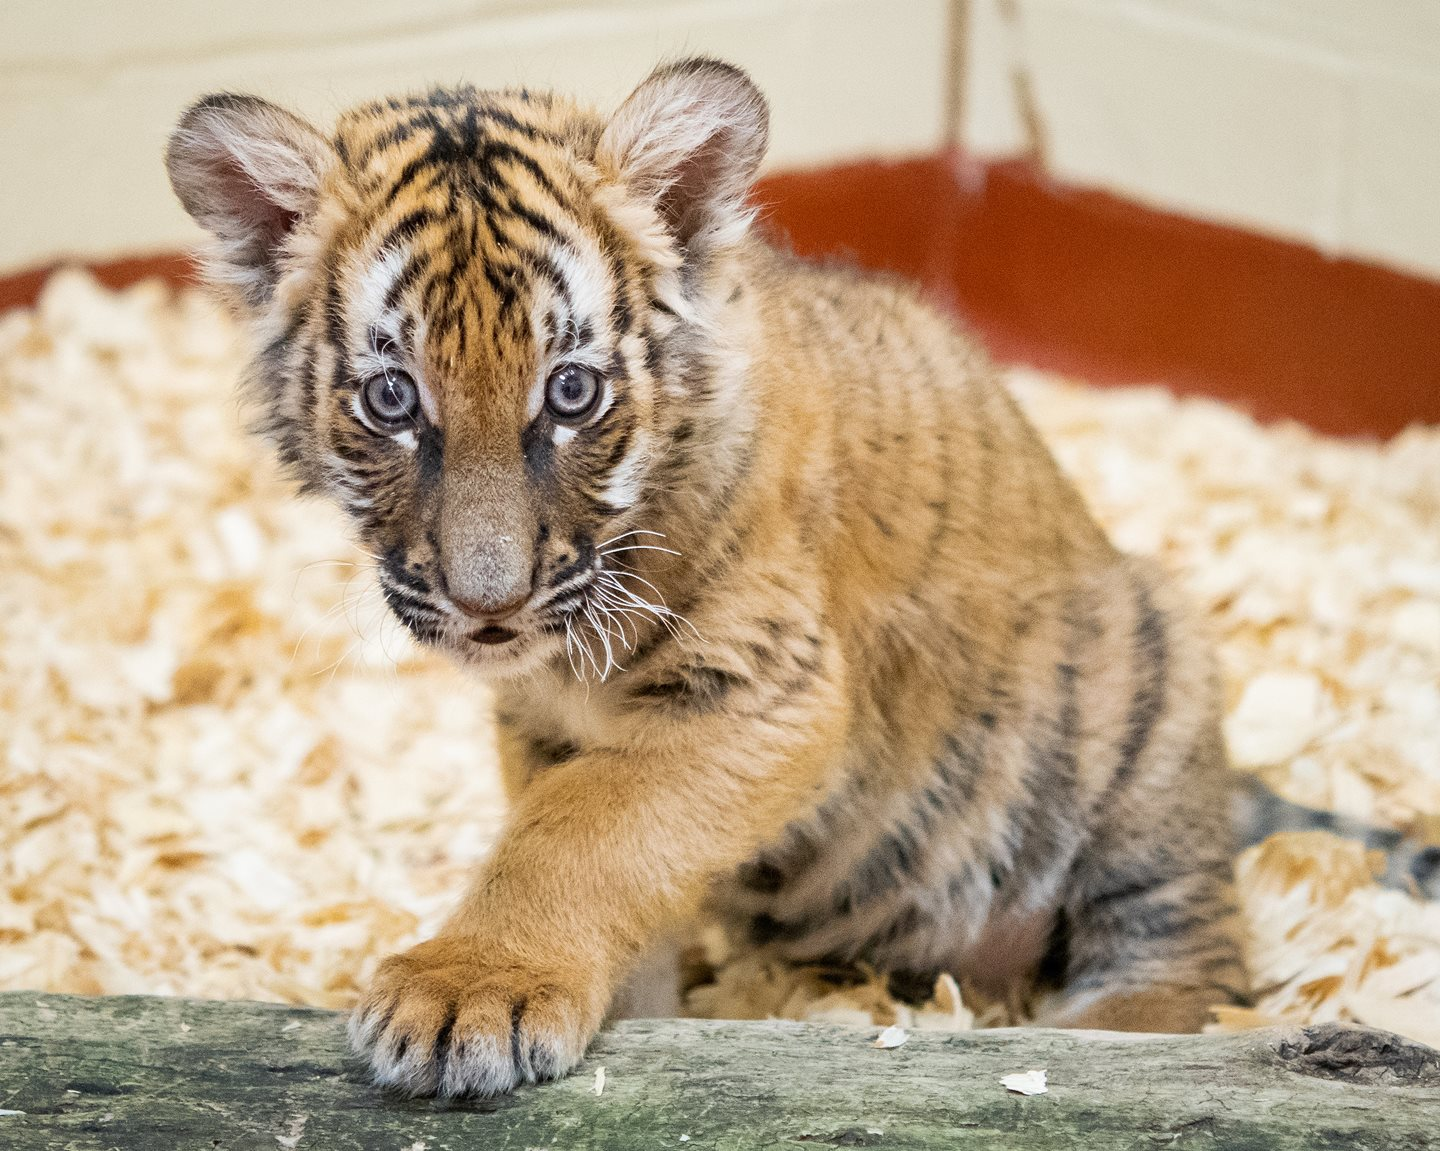 Cleveland Metroparks Zoo Welcomes Malayan Tiger Cub from Tulsa Zoo